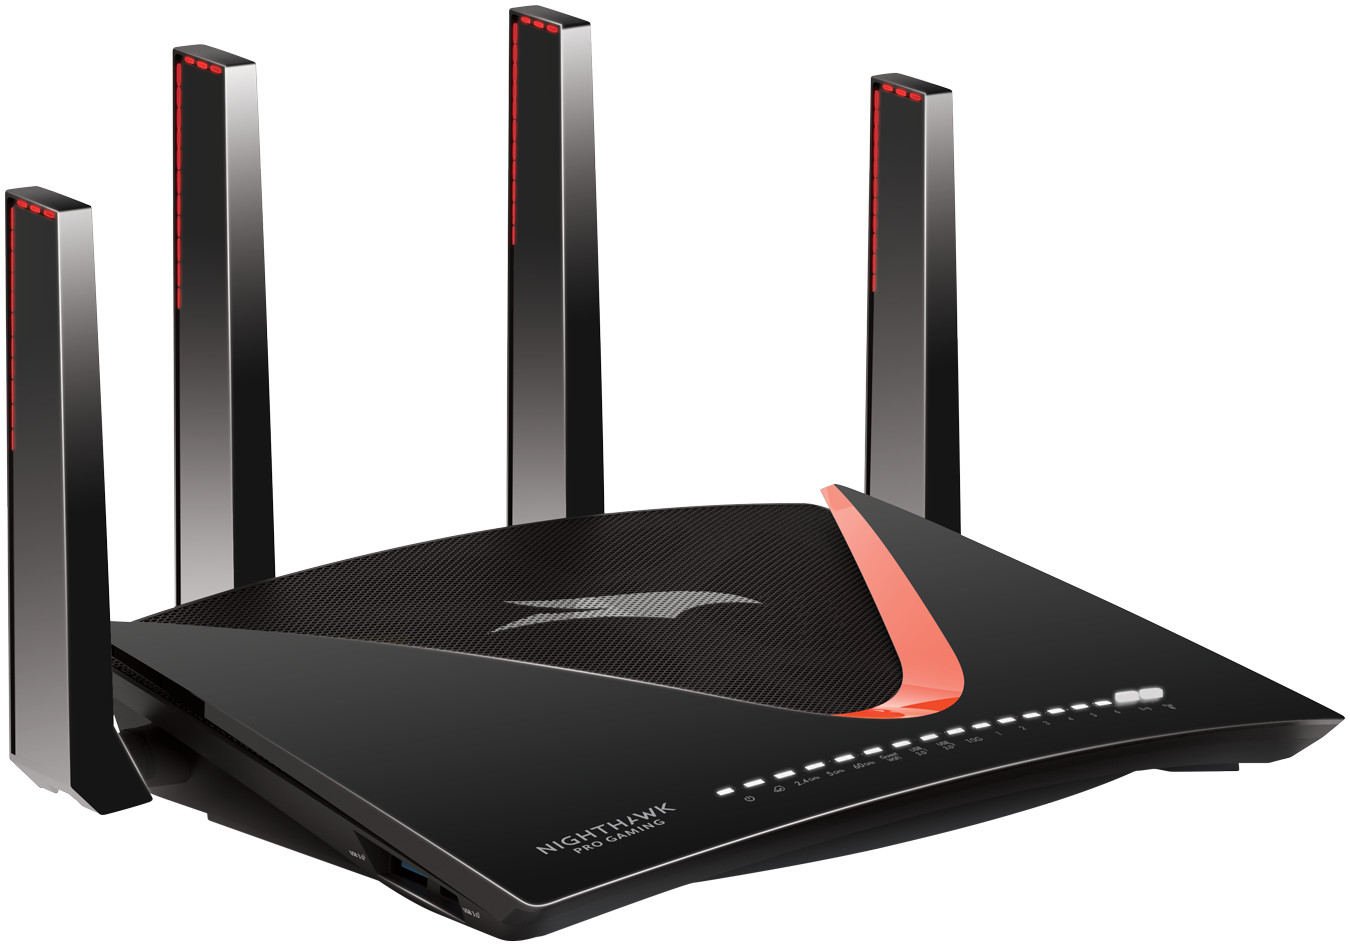 Netgear Releases Nighthawk Pro Gaming XR700 WiFi Router 10GbE